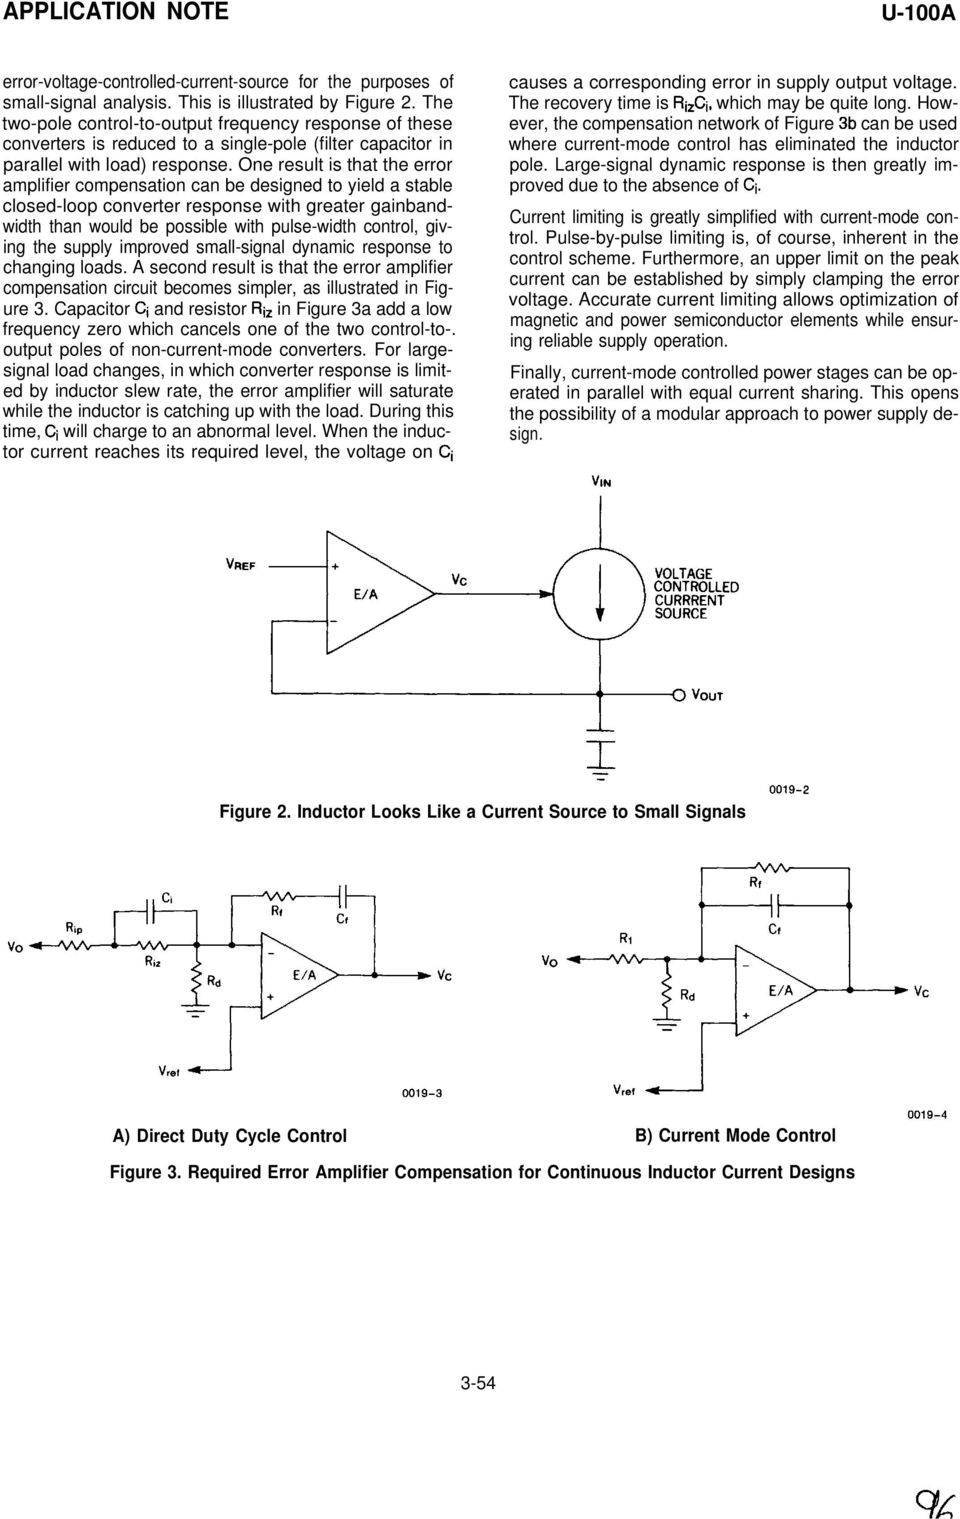 One result is that the error amplifier compensation can be designed to yield a stable closed-loop converter response with greater gainbandwidth than would be possible with pulse-width control, giving